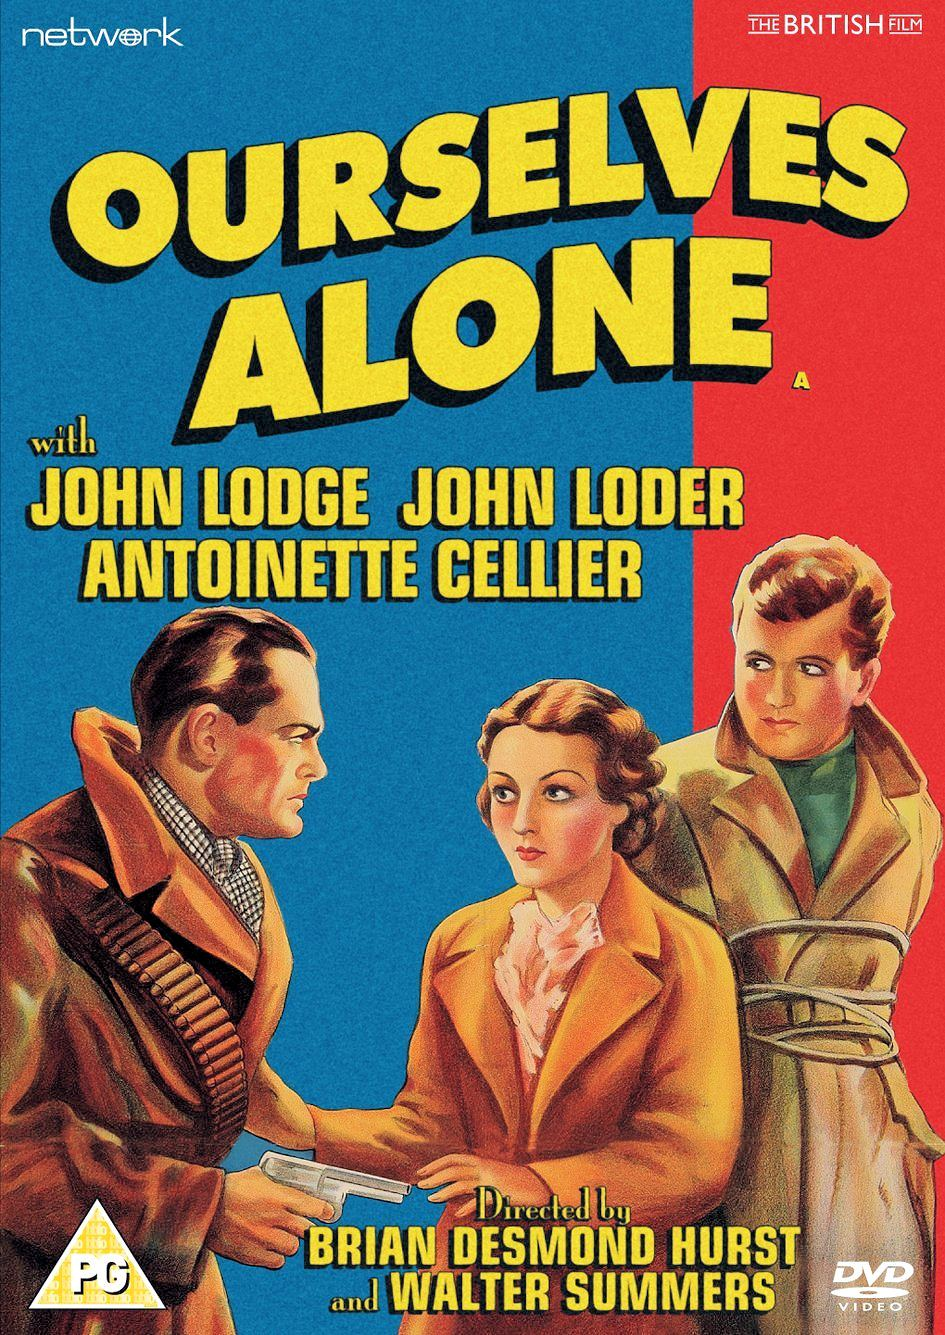 Ourselves Alone DVD from Network and the British Film